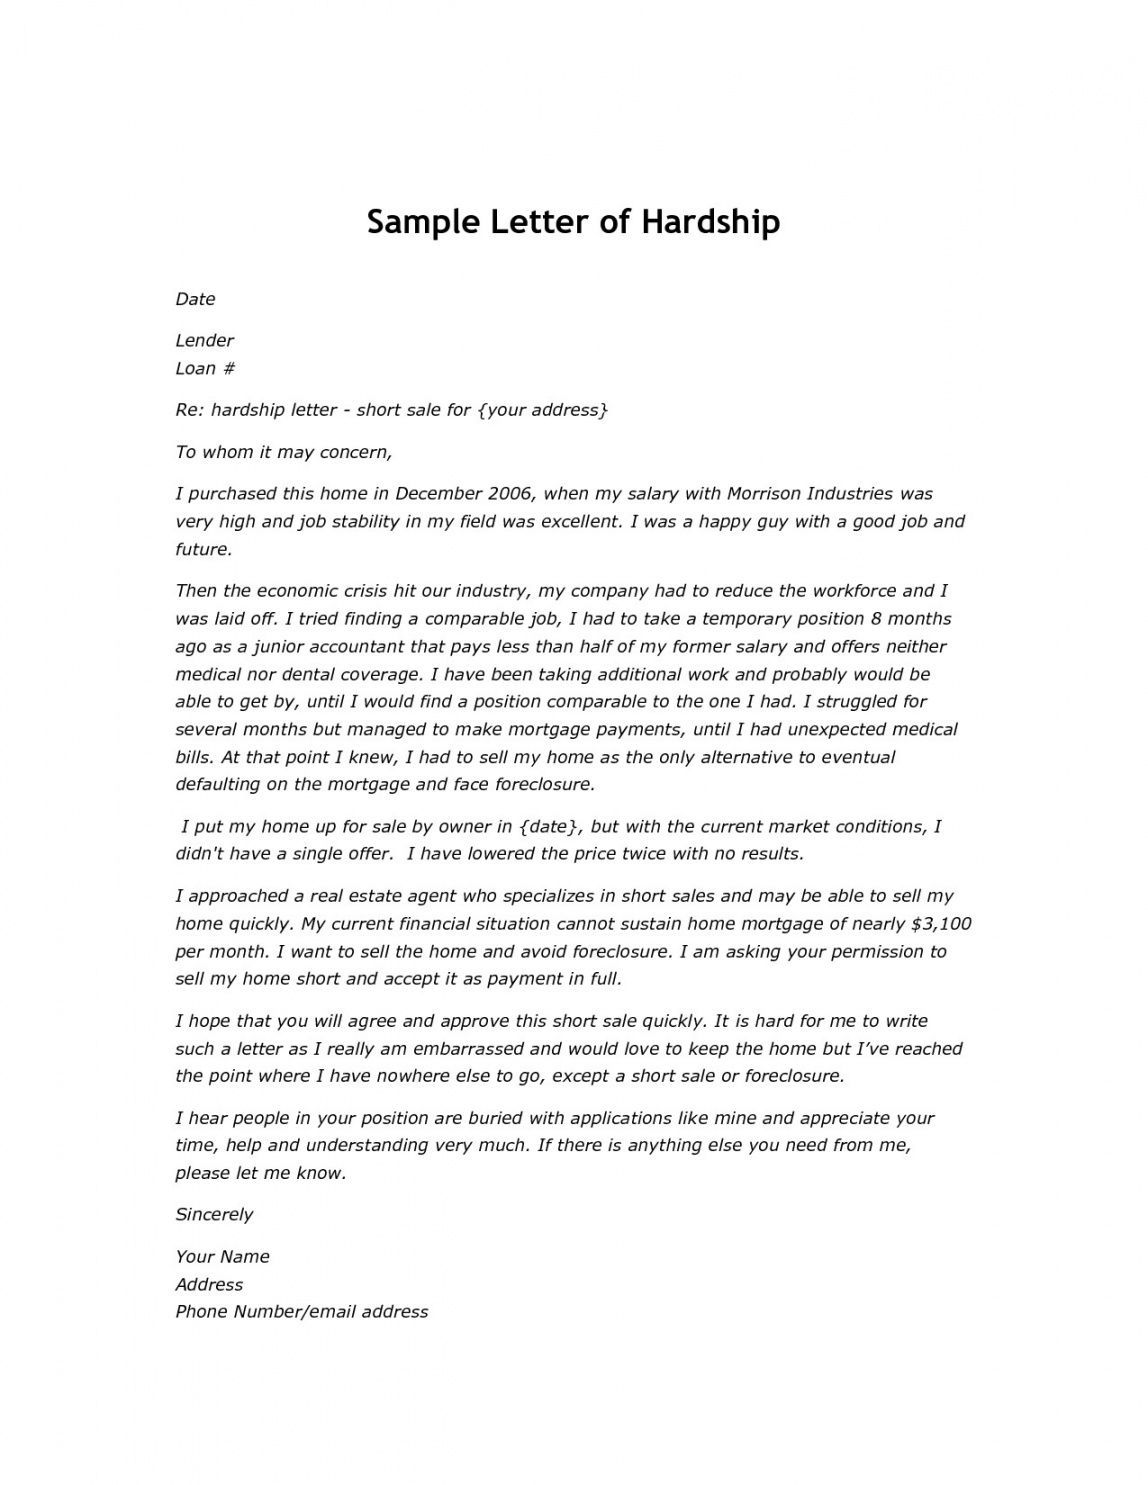 Costum Hardship Letter For Mortgage Modification Template Word In 2021 Lettering Business Newsletter Templates Business Letter Template